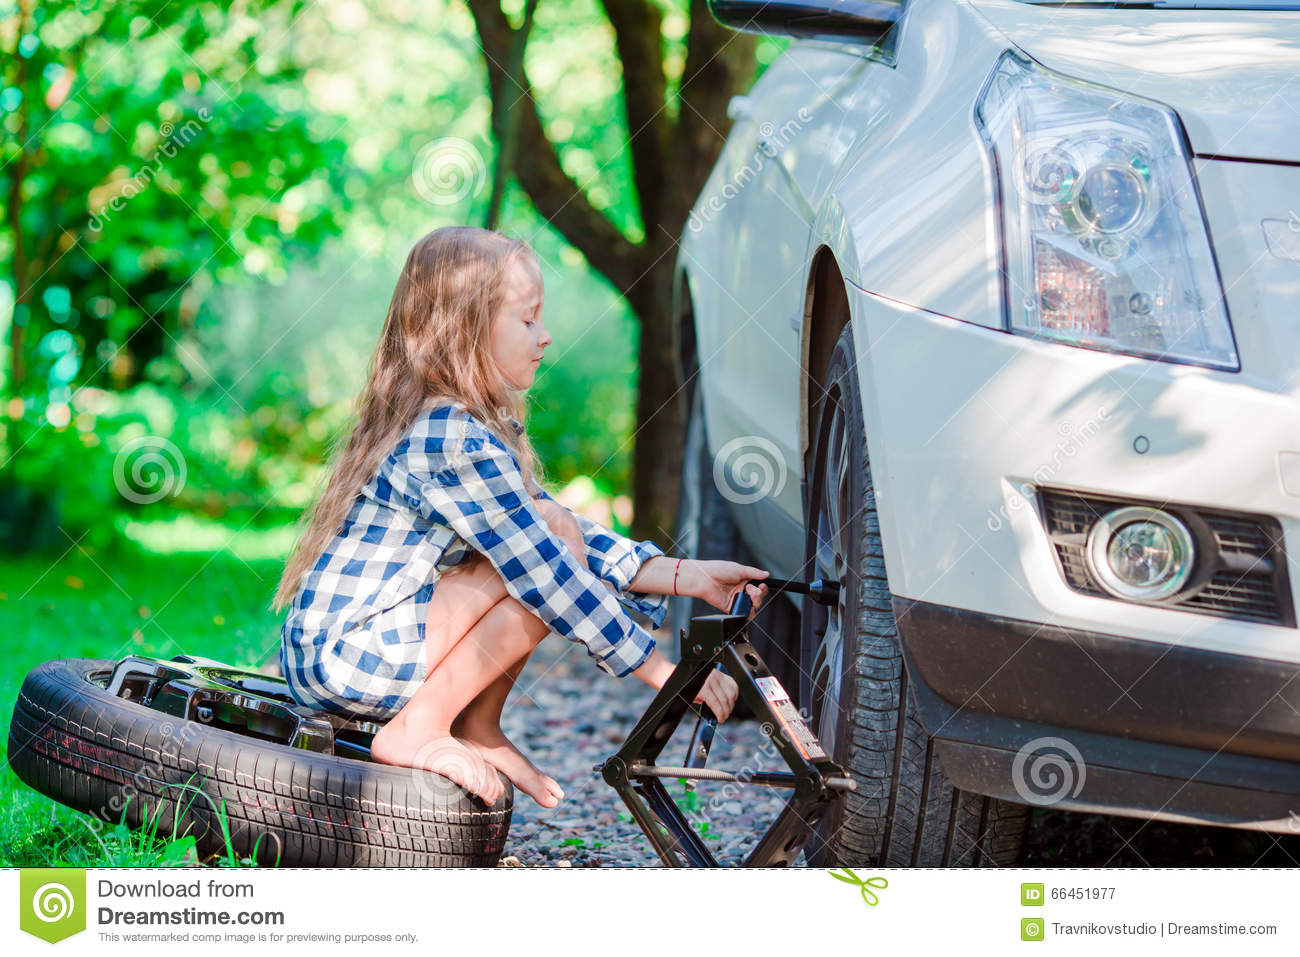 in Young girl car changing